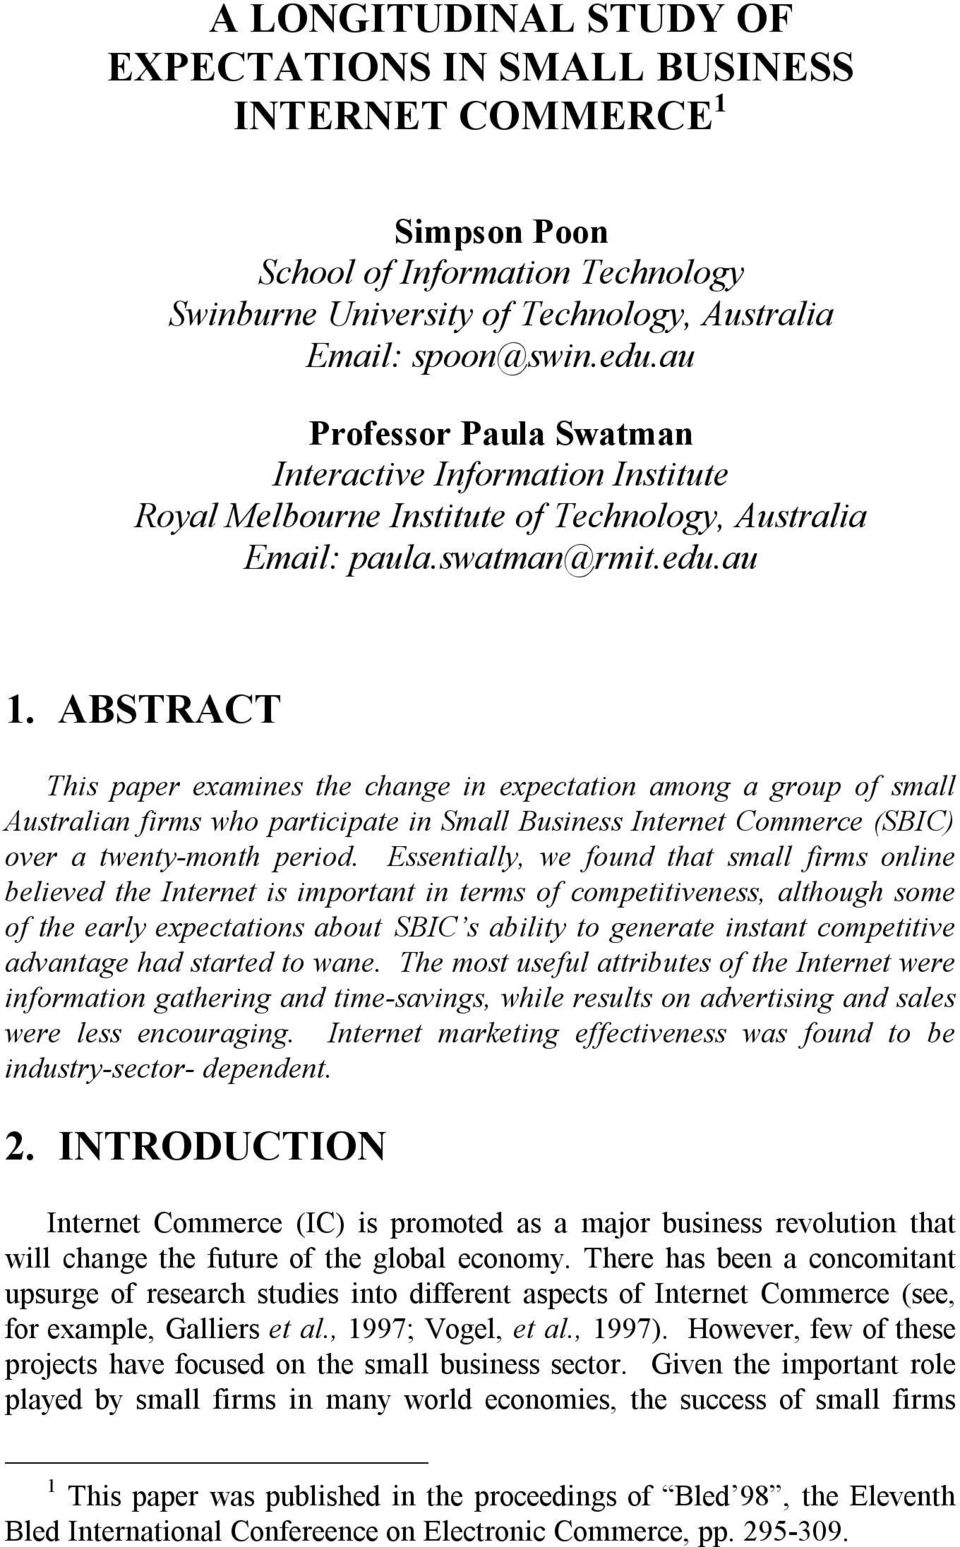 ABSTRACT This paper examines the change in expectation among a group of small Australian firms who participate in Small Business Internet Commerce (SBIC) over a twenty-month period.